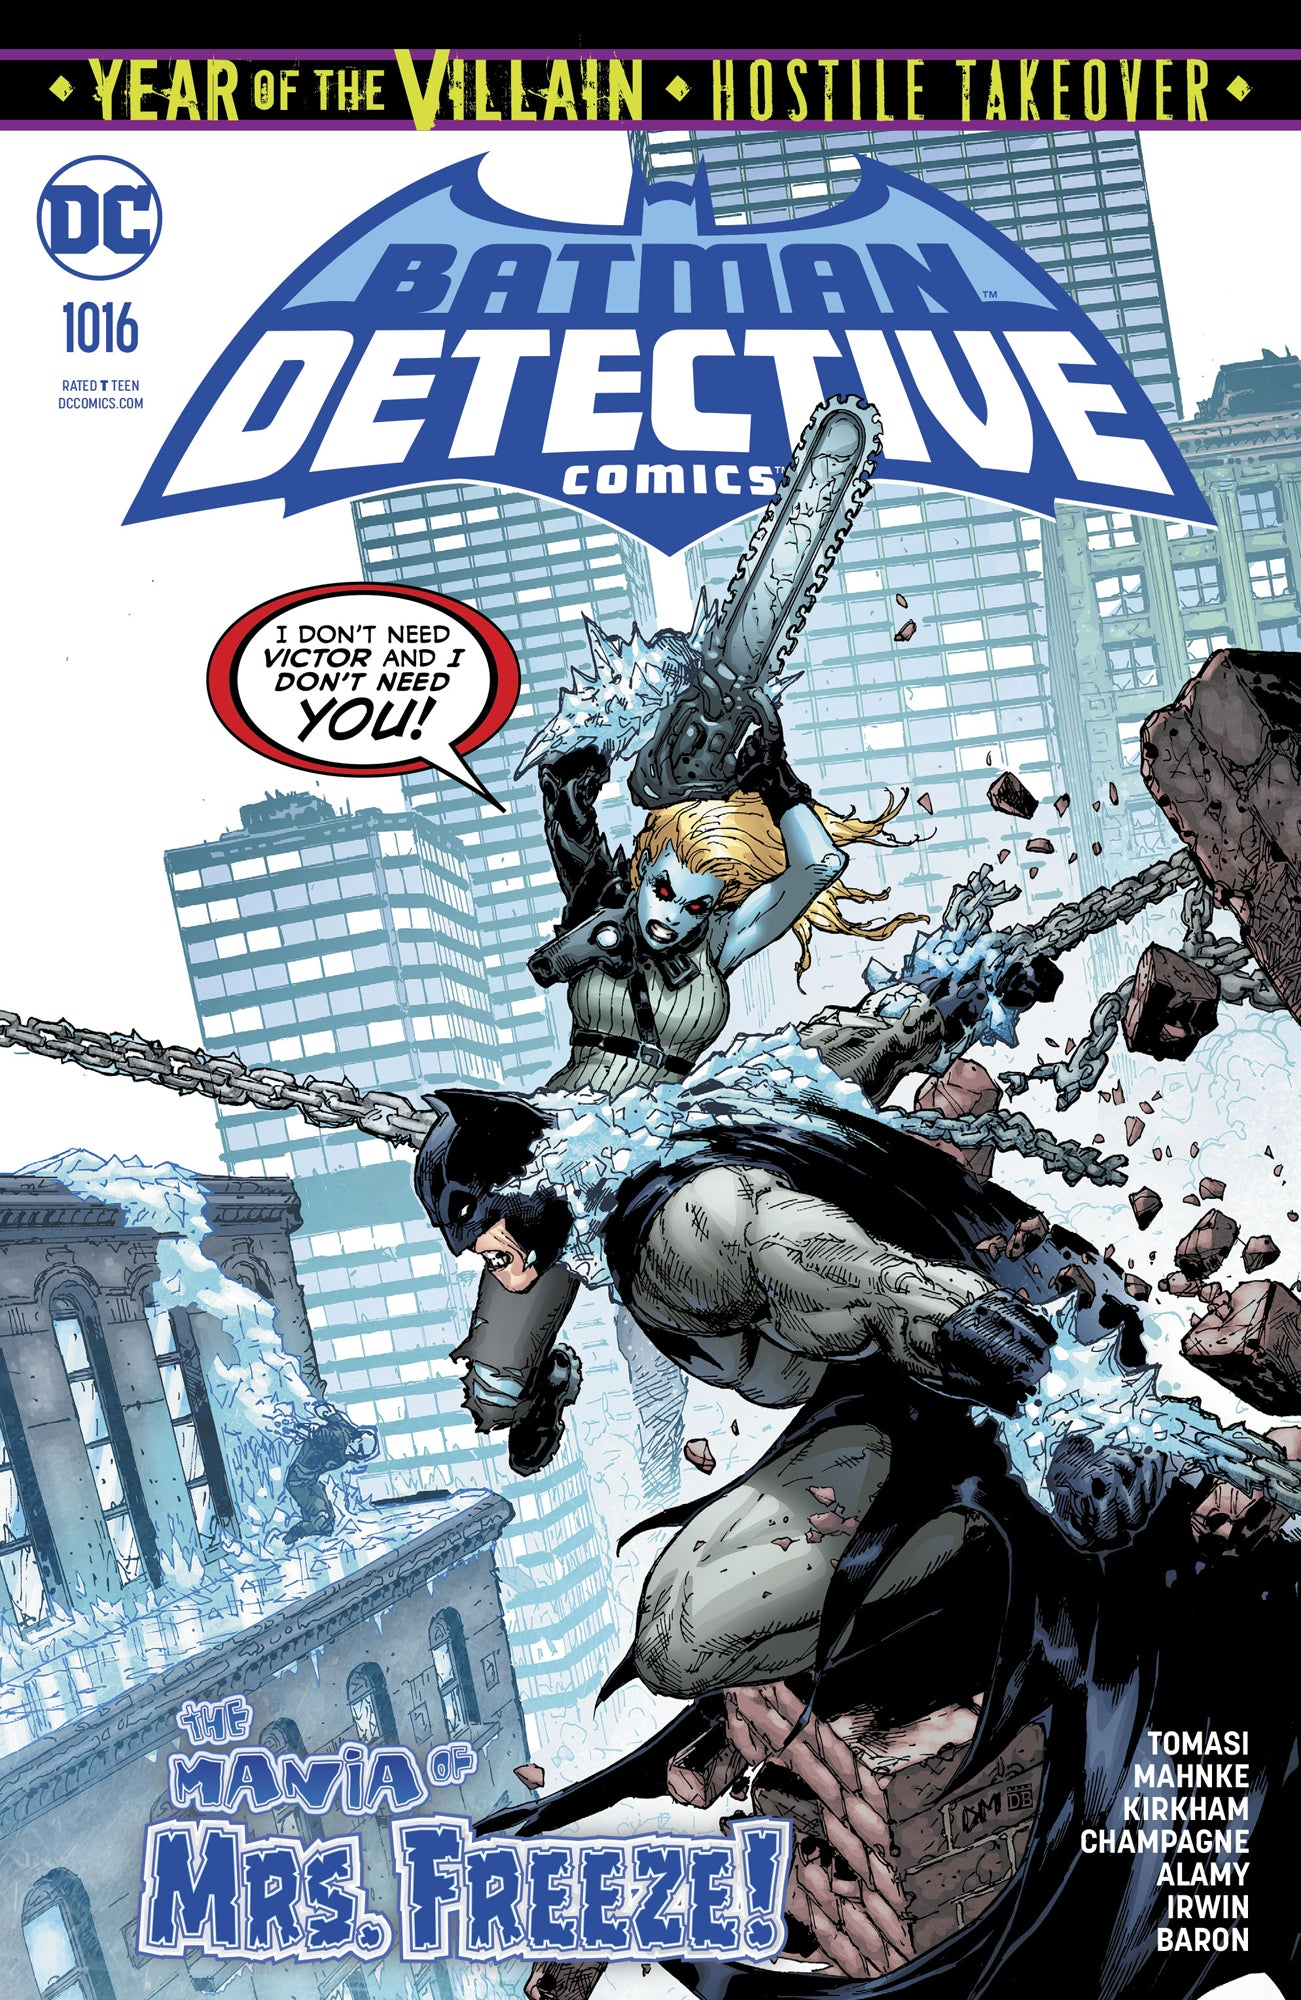 DETECTIVE COMICS #1016 | Game Master's Emporium (The New GME)